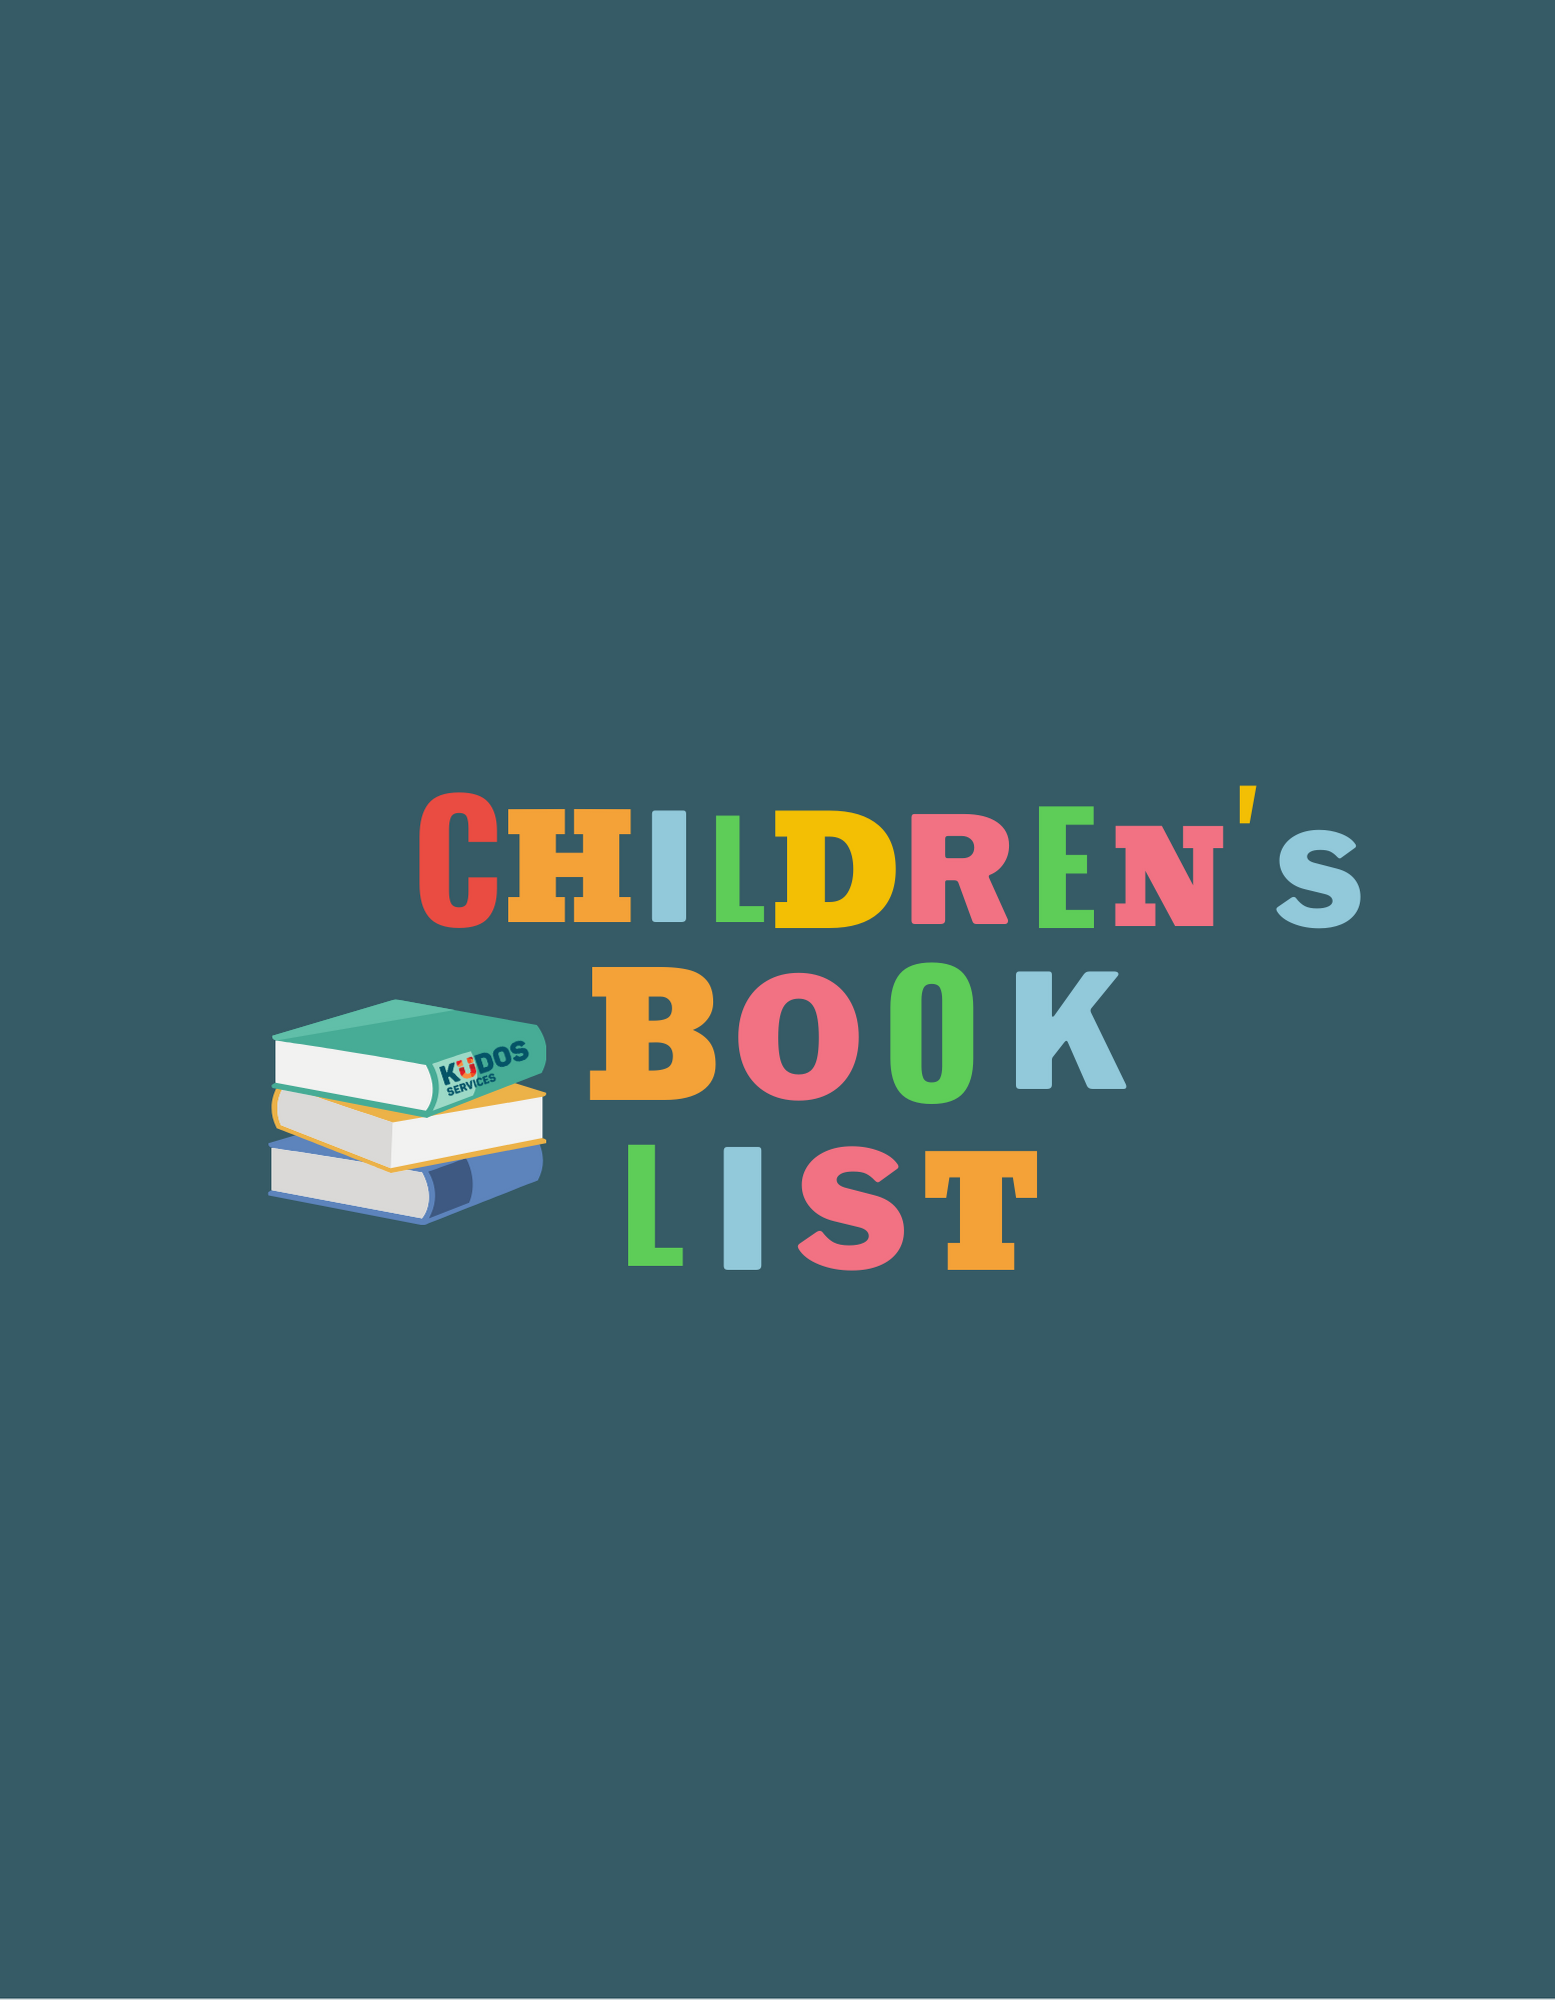 Children's Book List with tips for parents and caregivers